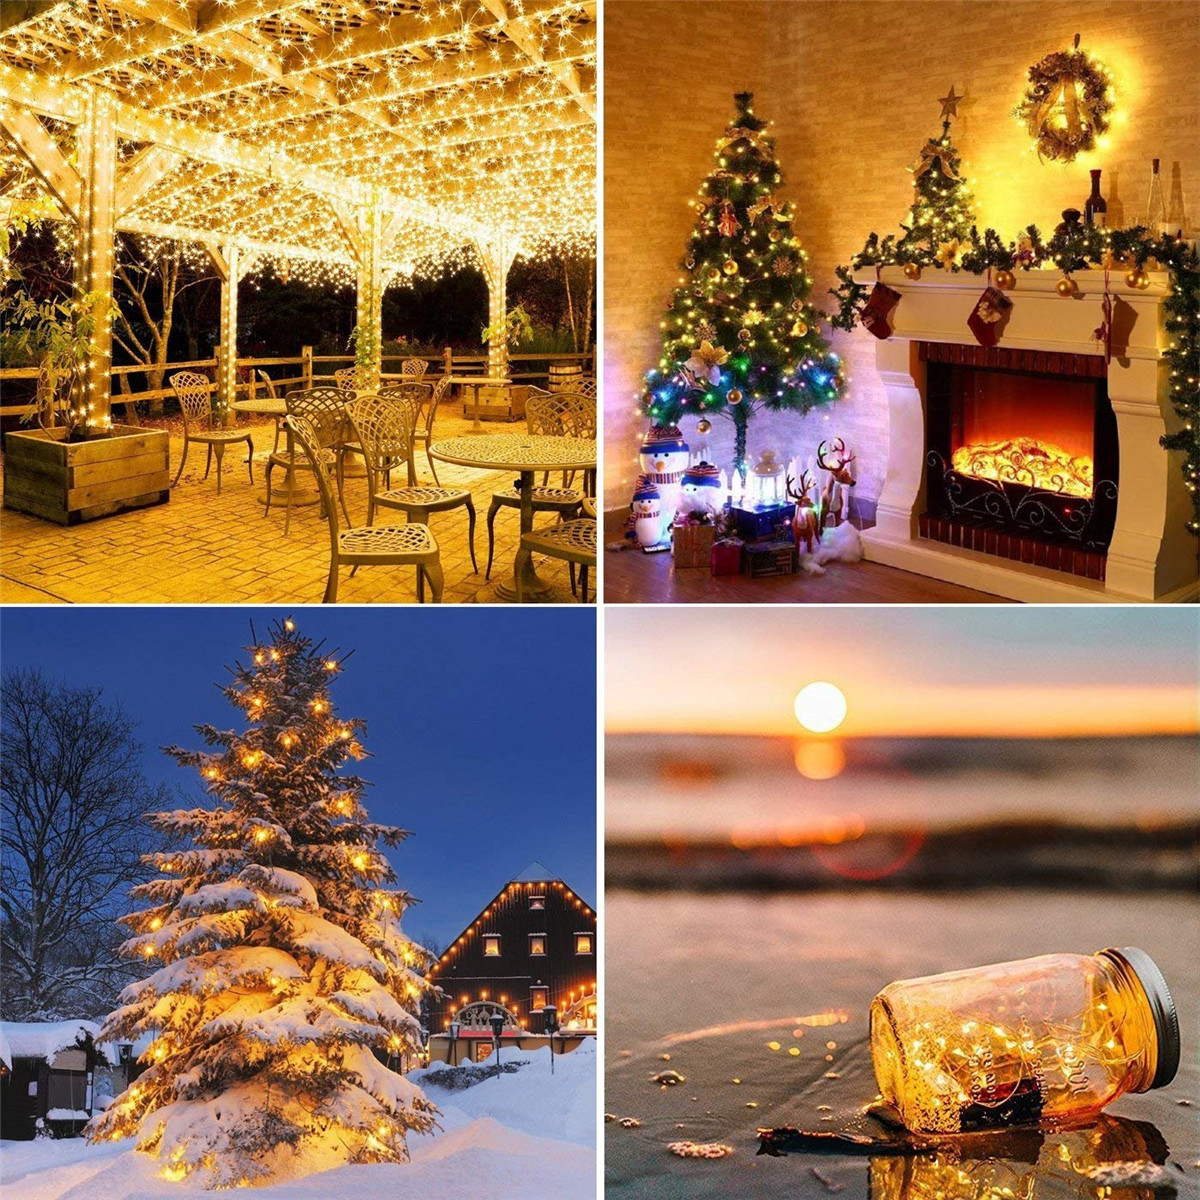 12m/22m Christmas Garland Led Fairy Light Outdoor Solar Powered String Lights 2 Mode Garden Wedding Decoration Waterproof Lights